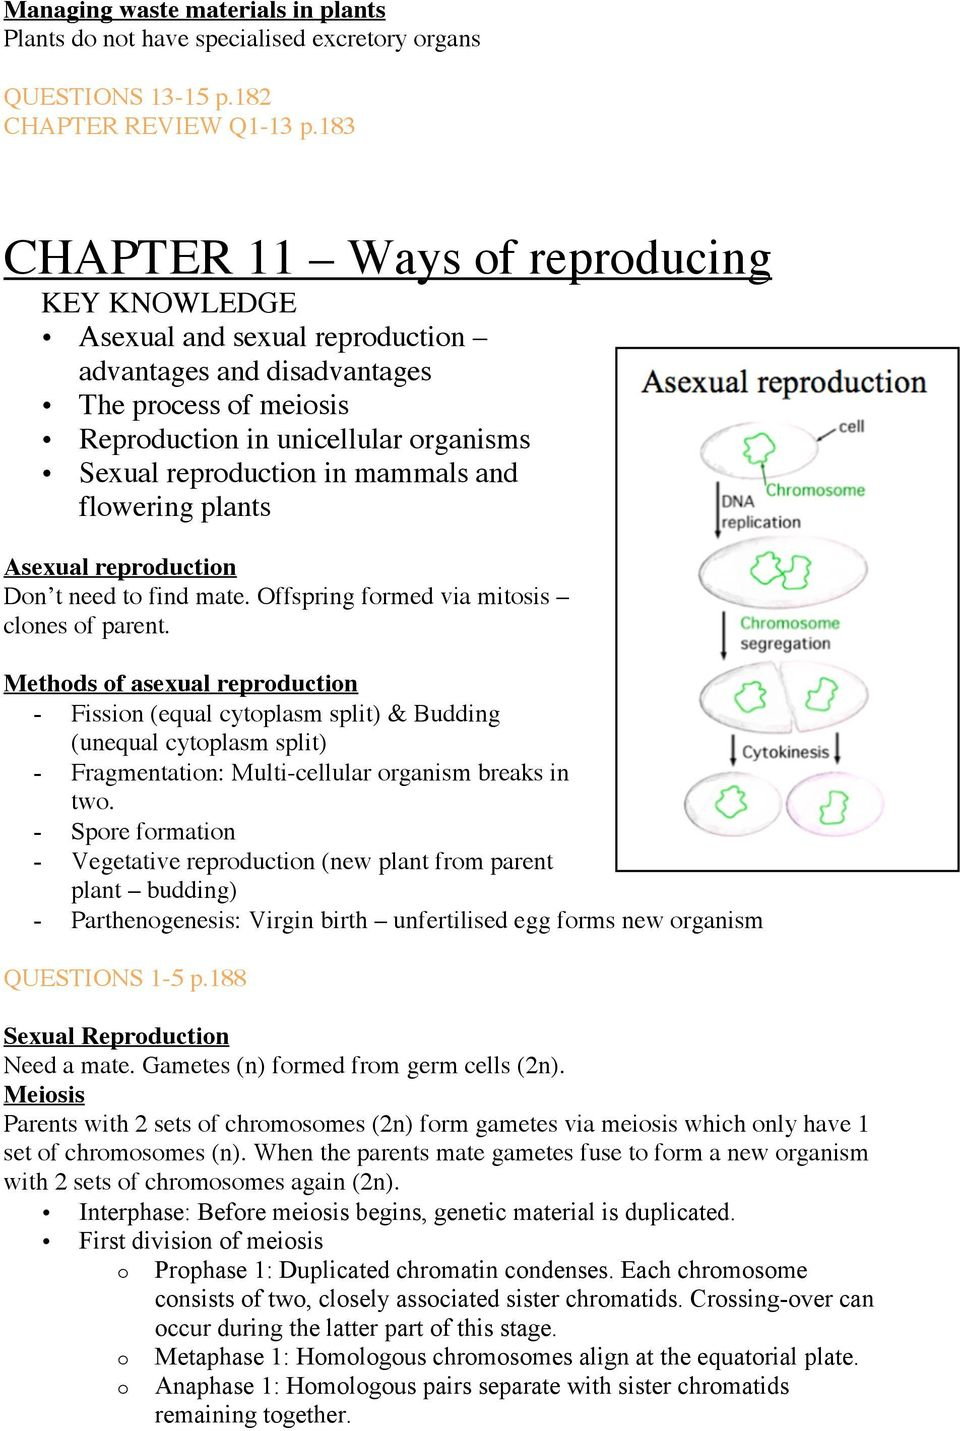 mitosis and asexual reproduction quiz